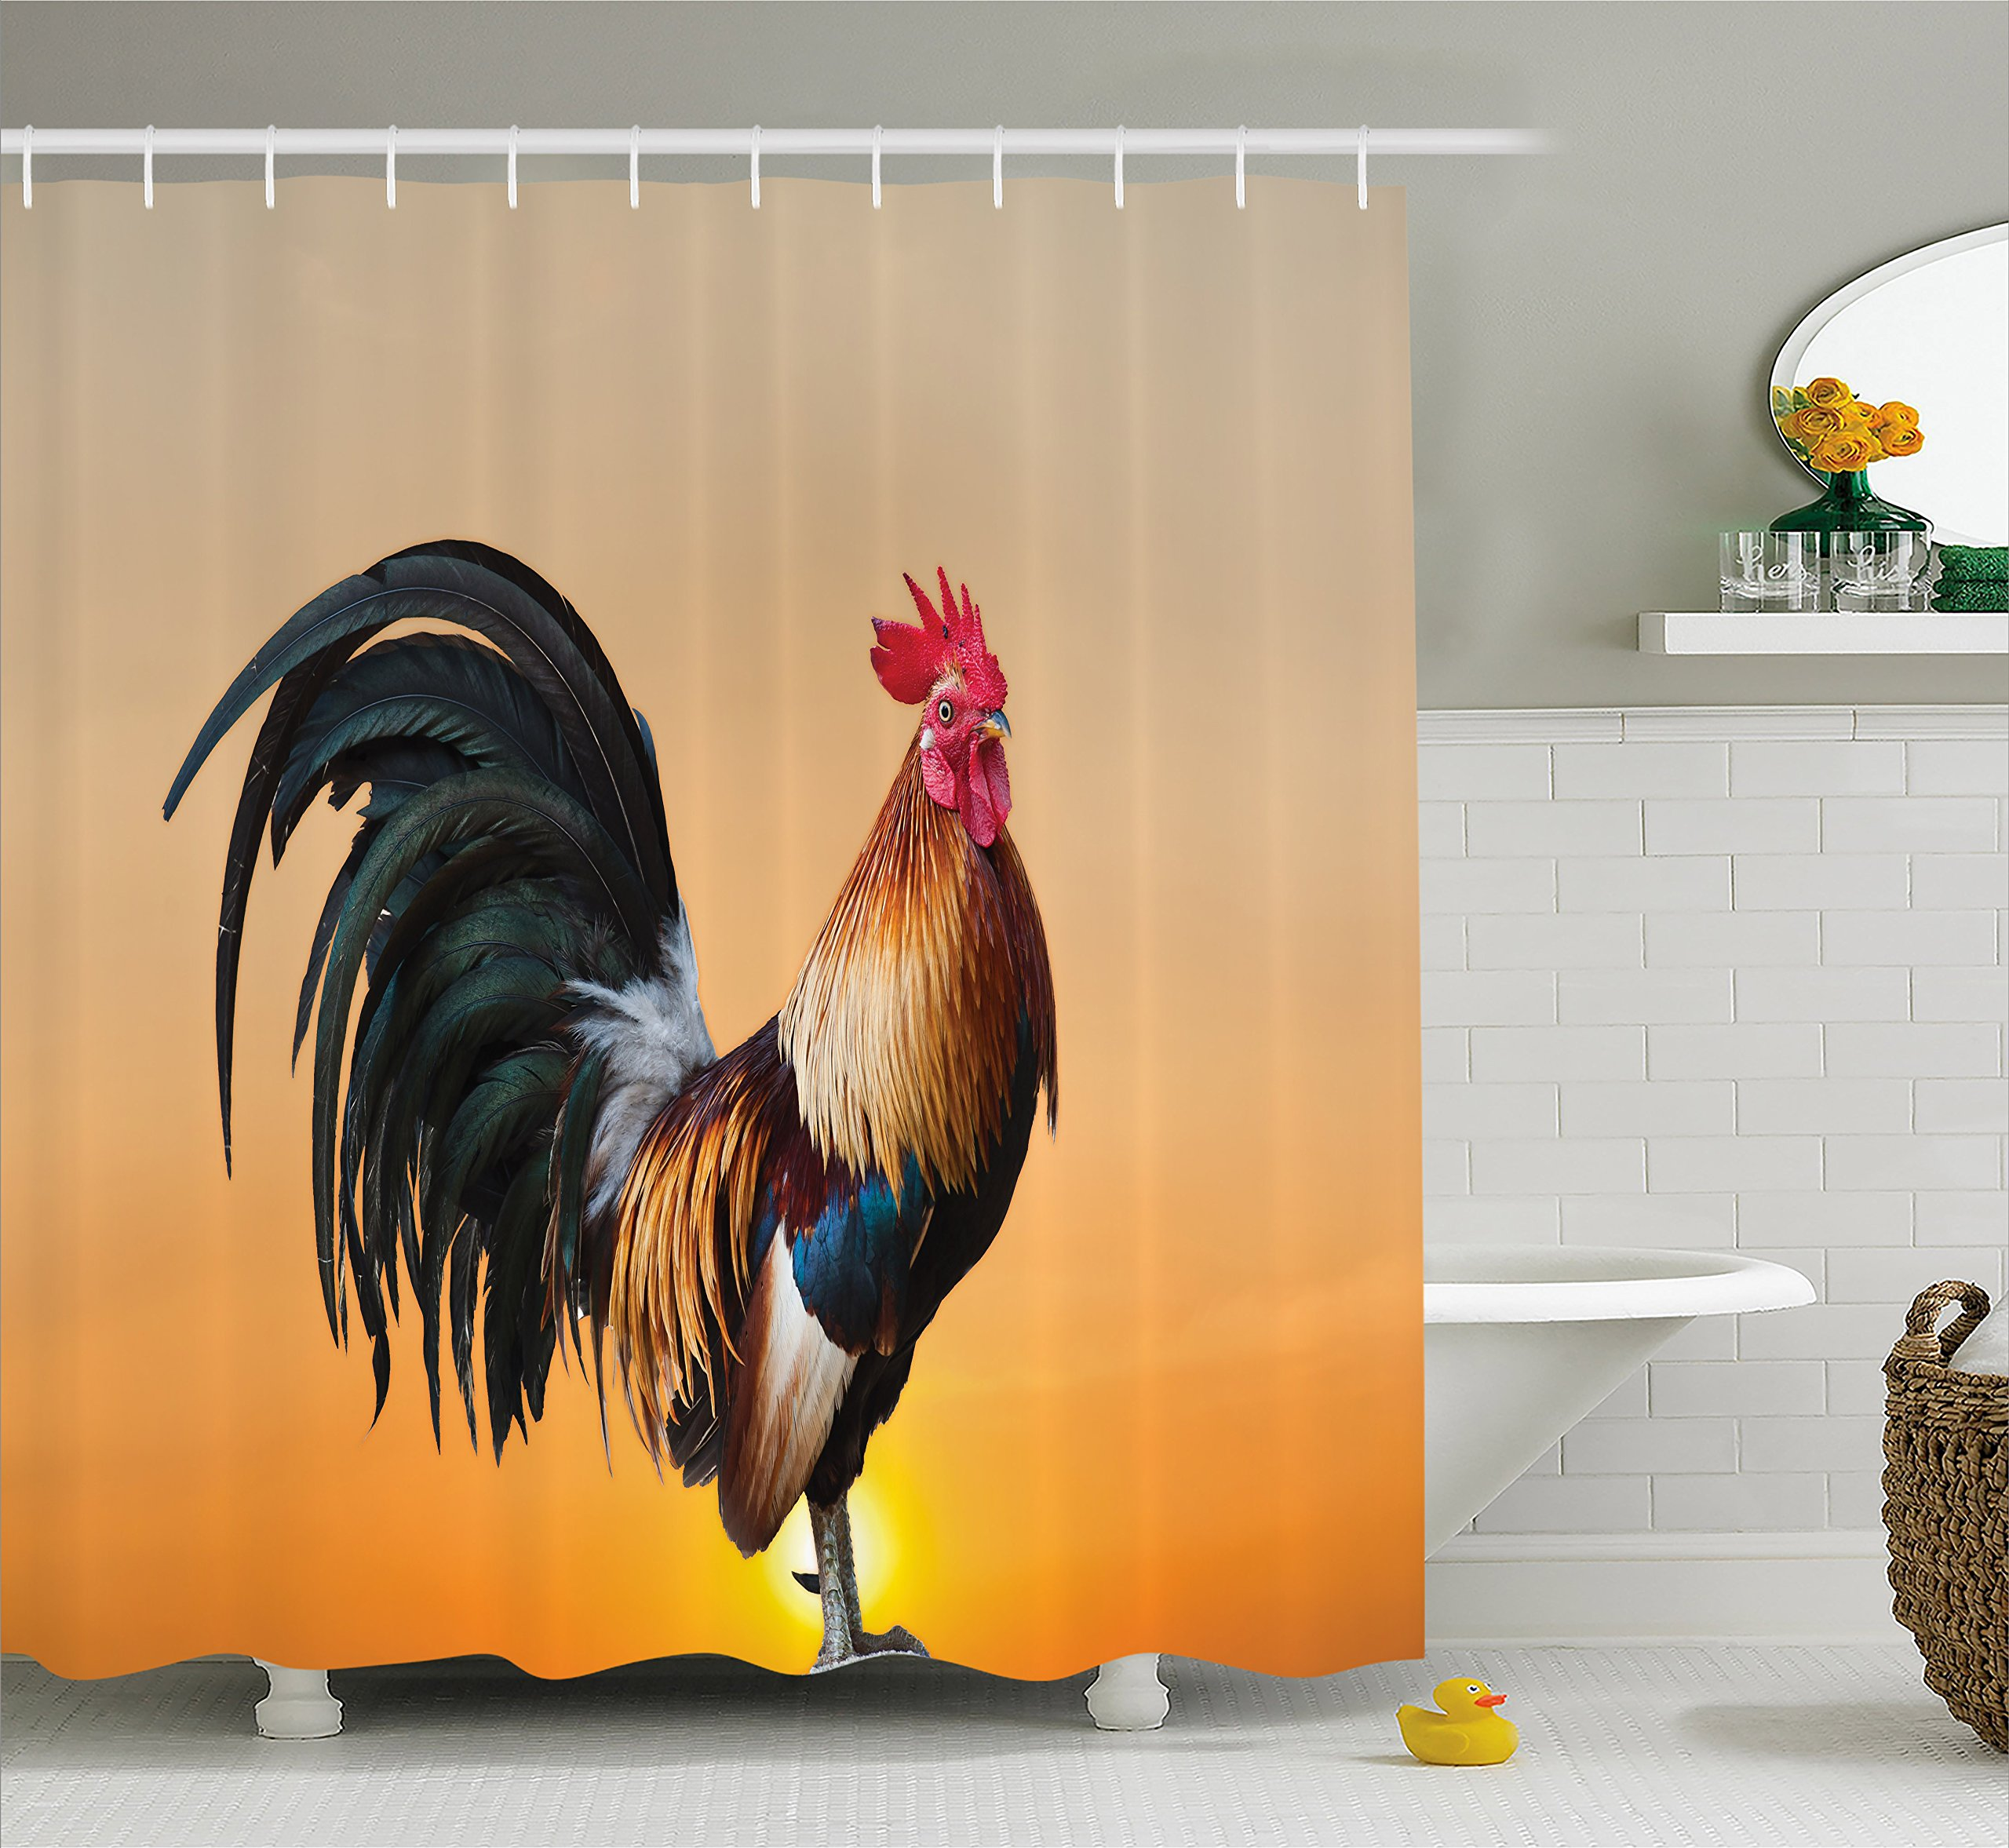 Ambesonne Rooster Shower Curtain, Animal Cockerel on Sunrise Farmhouse Harvest Season Rural Pastoral Nature Scenery, Cloth Fabric Bathroom Decor Set with Hooks, 70 inches, Multicolor